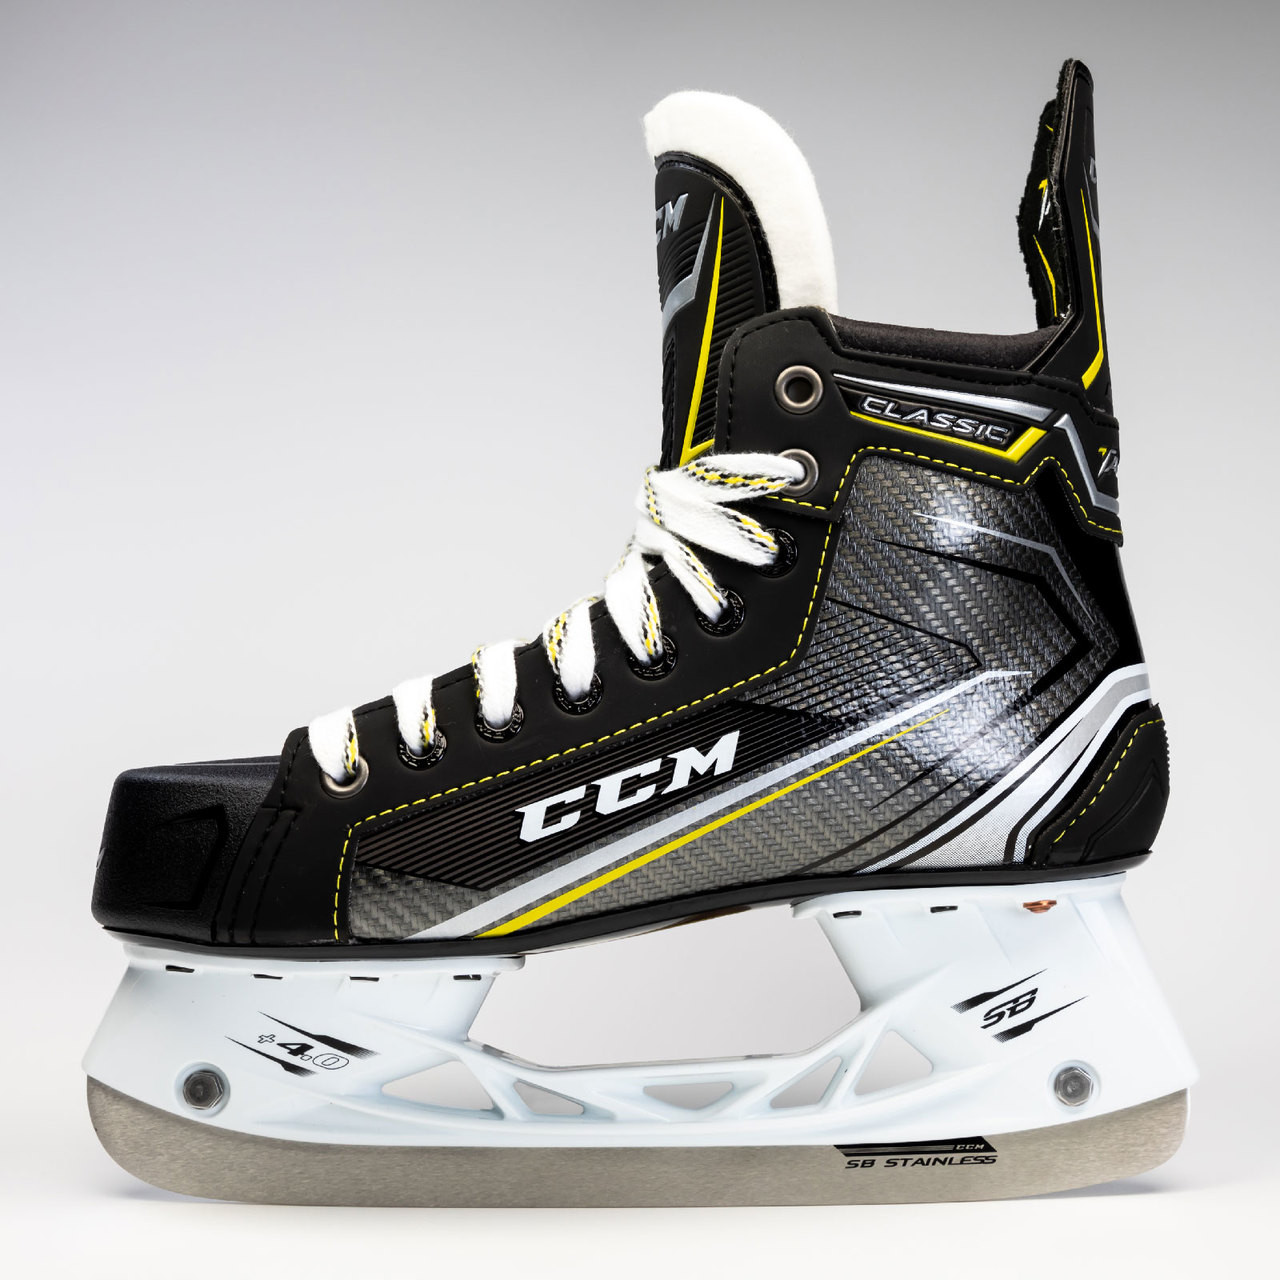 2abfb2463d1 ... CCM Tacks Classic 9060 SMU Senior Hockey Skates ...